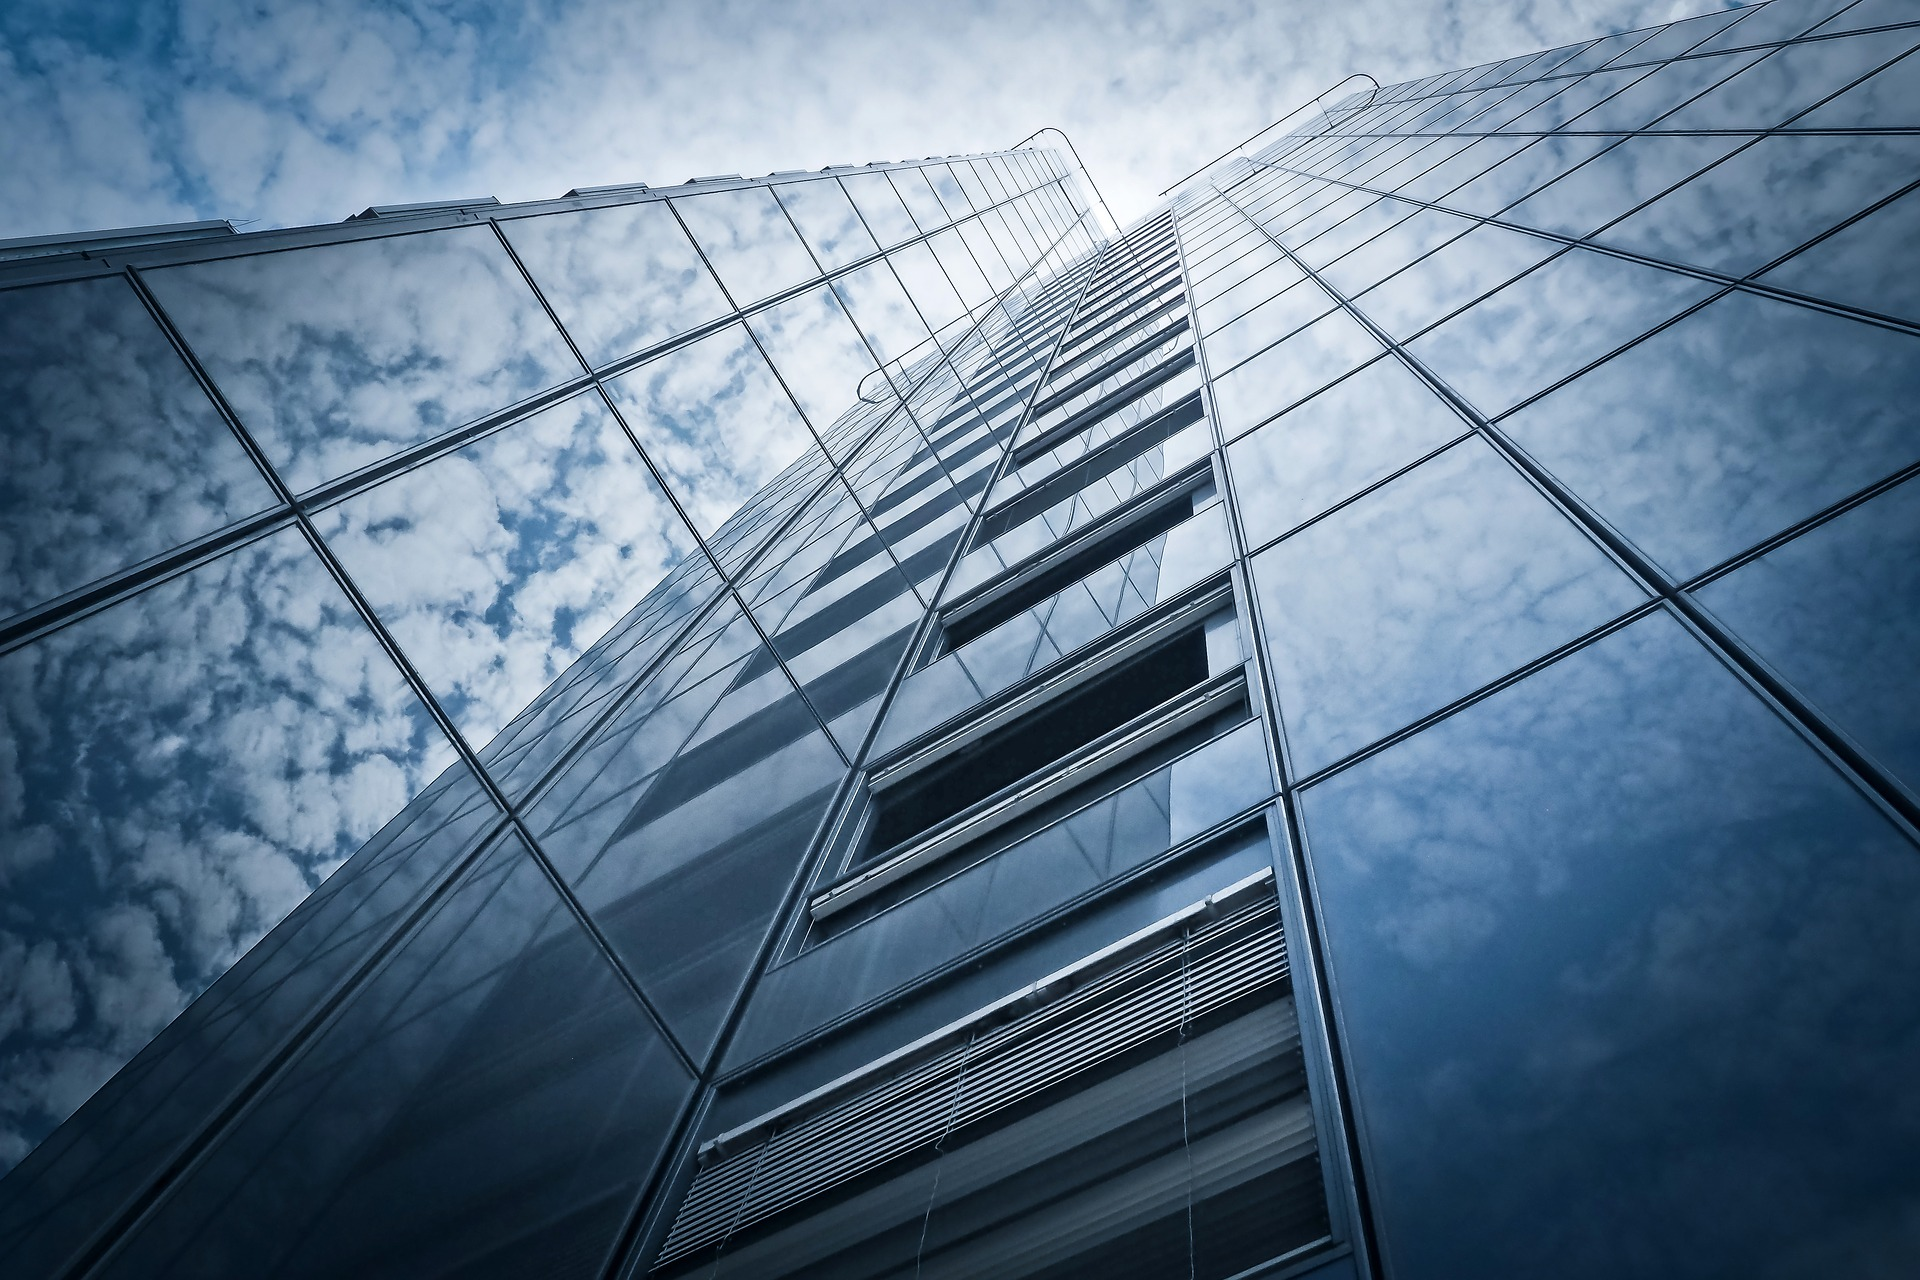 A curtain wall system can span multiple floors and even the entire height of the building and is a complex system that has many interrelated parts.